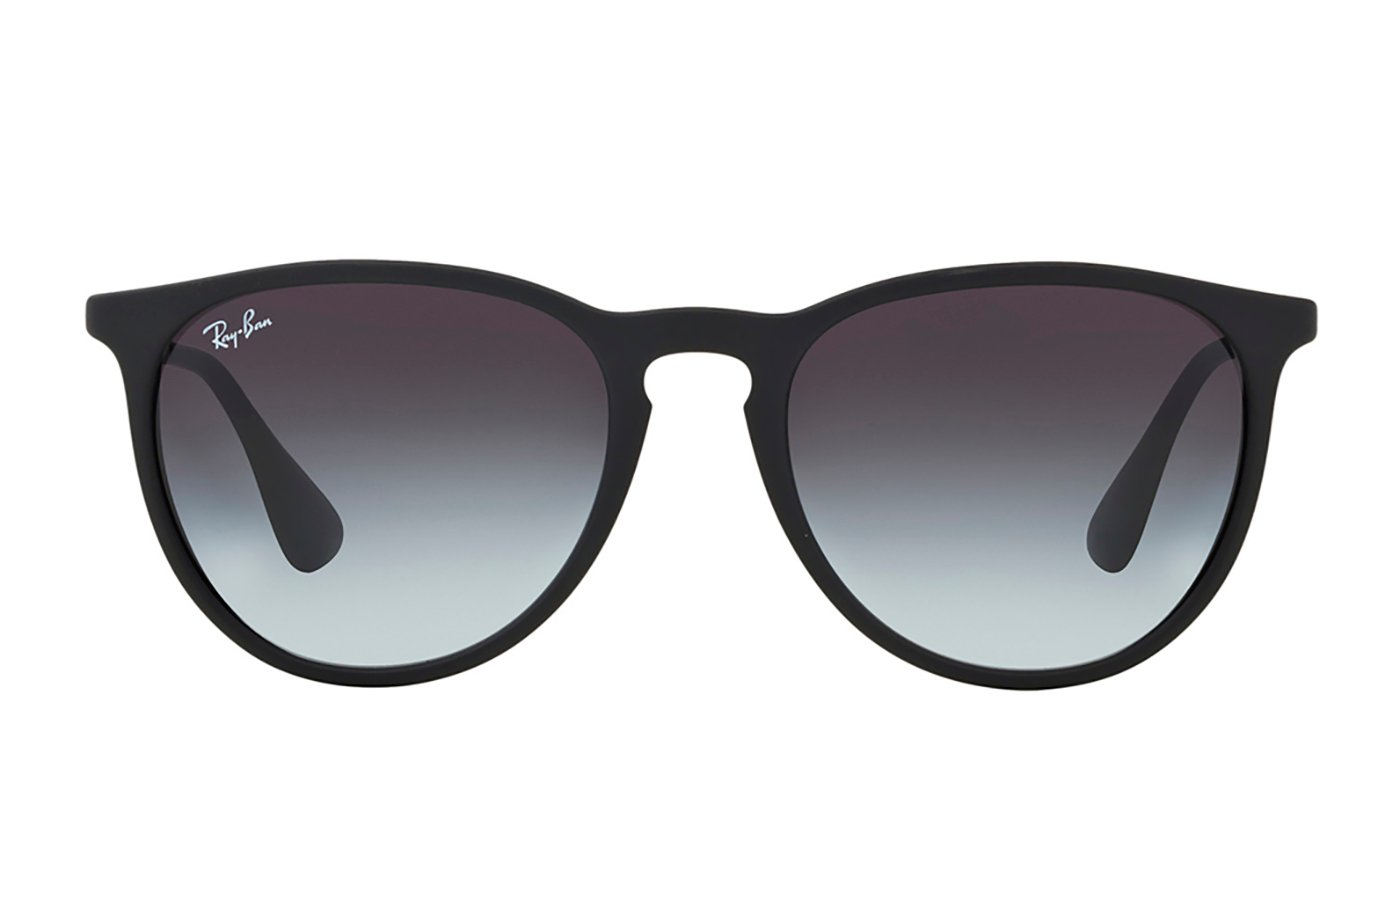 RAY-BAN ERIKA 0RB4171 54 622/8G RUBBER BLACK